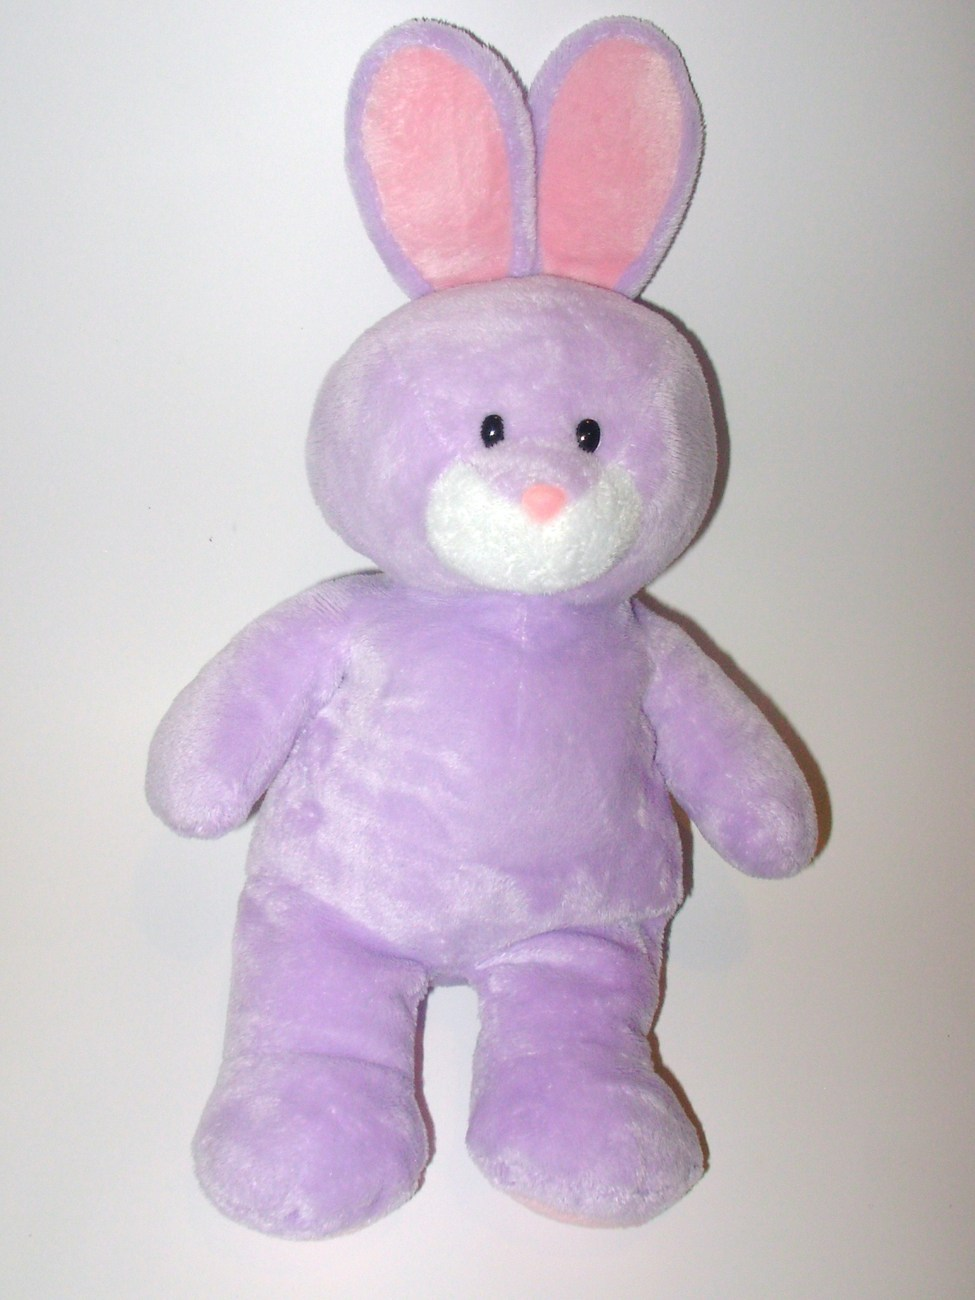 Ty Pluffies Springy Purple Bunny Rabbit Easter Plush Stuffed Animal Toy